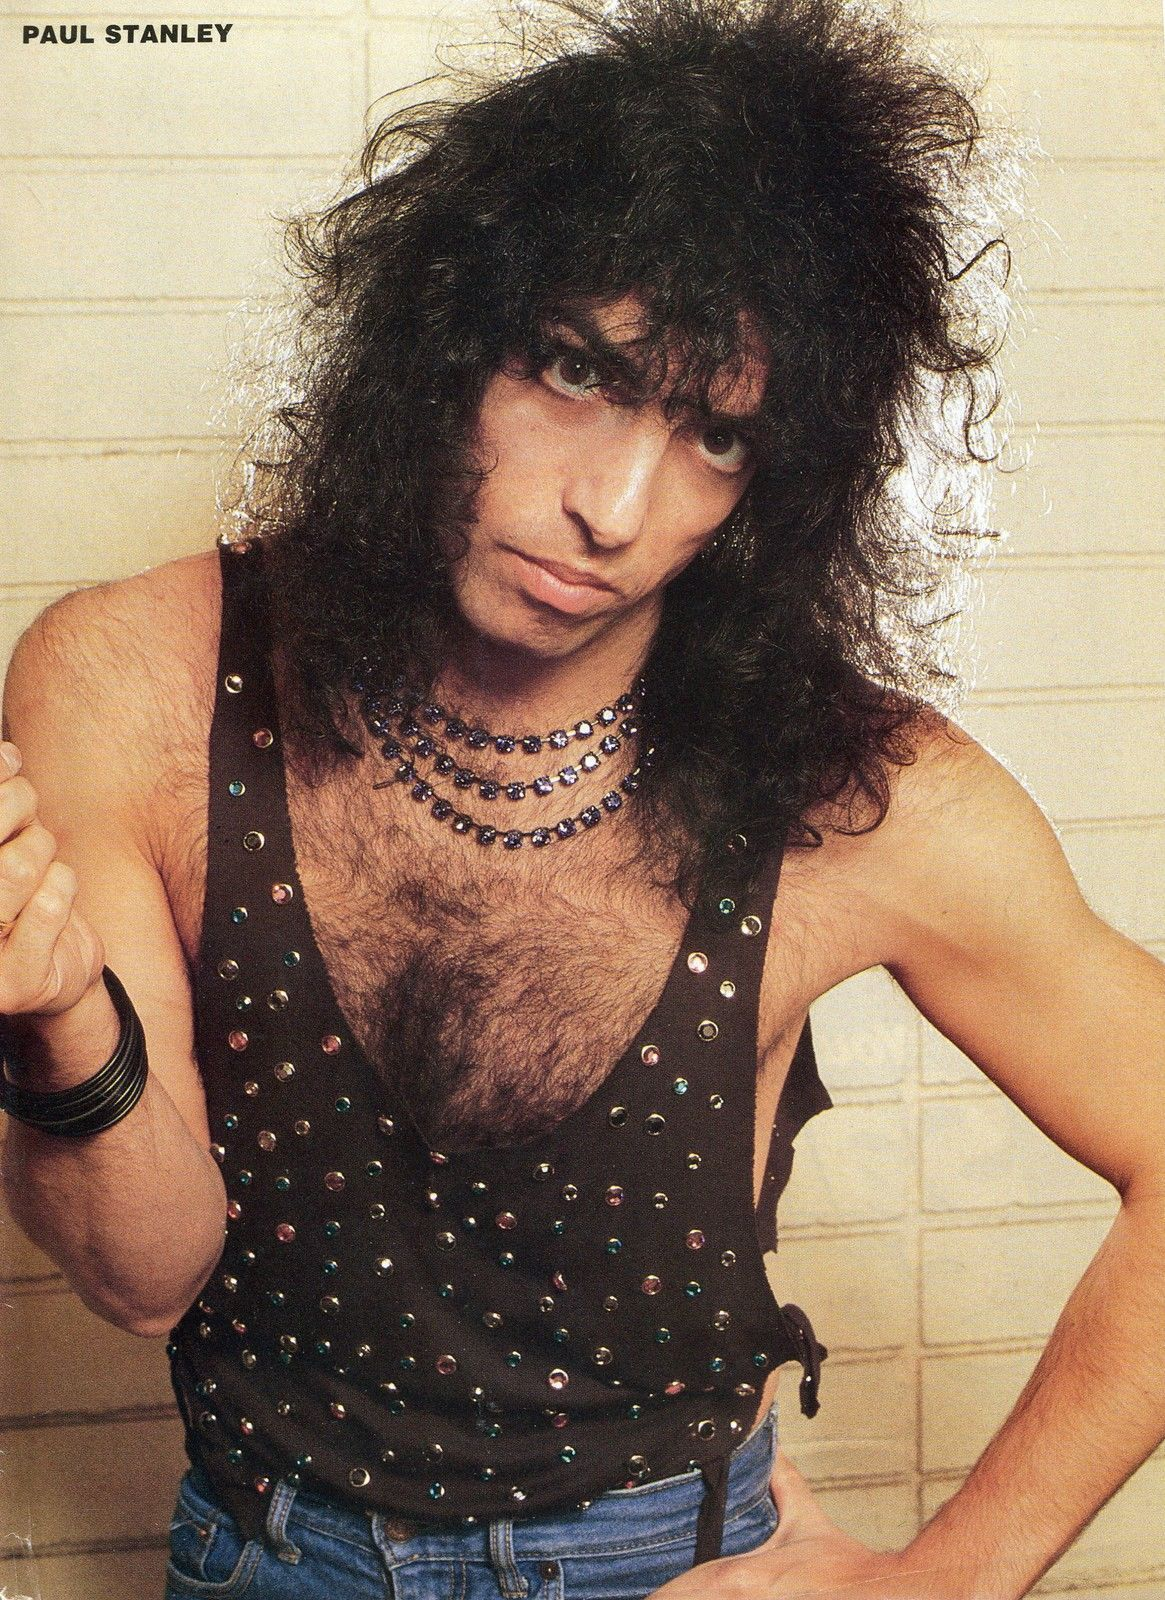 Paul Stanley Pinup clipping 80's Sexy Kiss | eBay | KISS ...